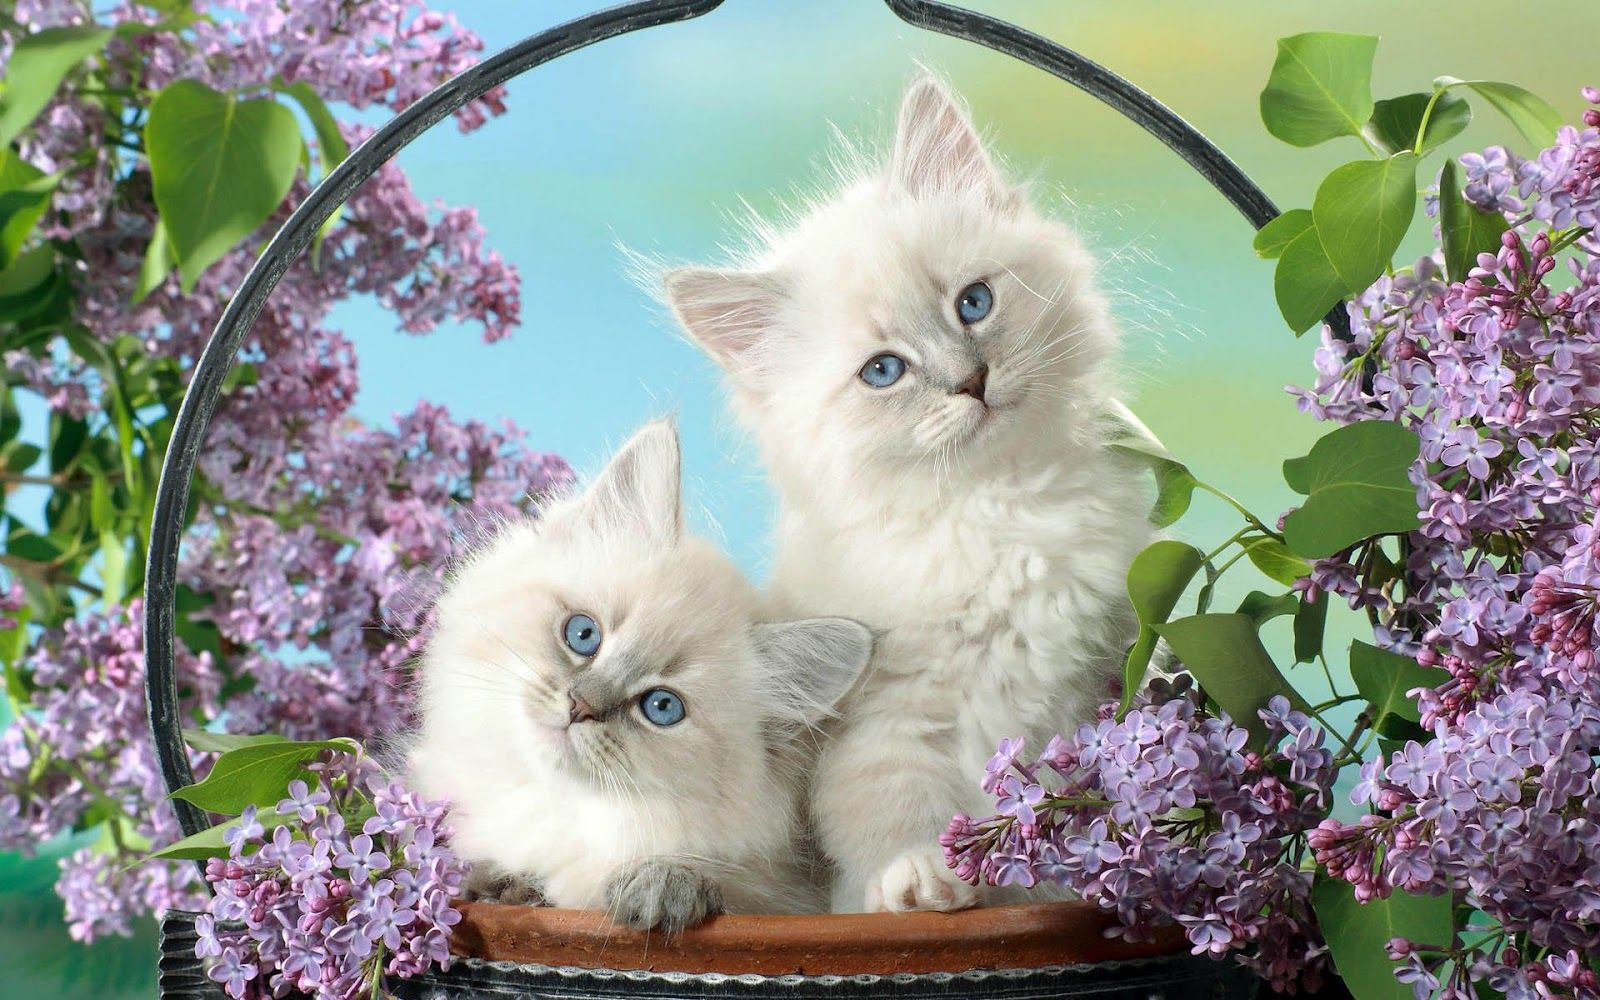 30 Cute And Lovely Cat Wallpapers For Desktop Images Of Cute Cats